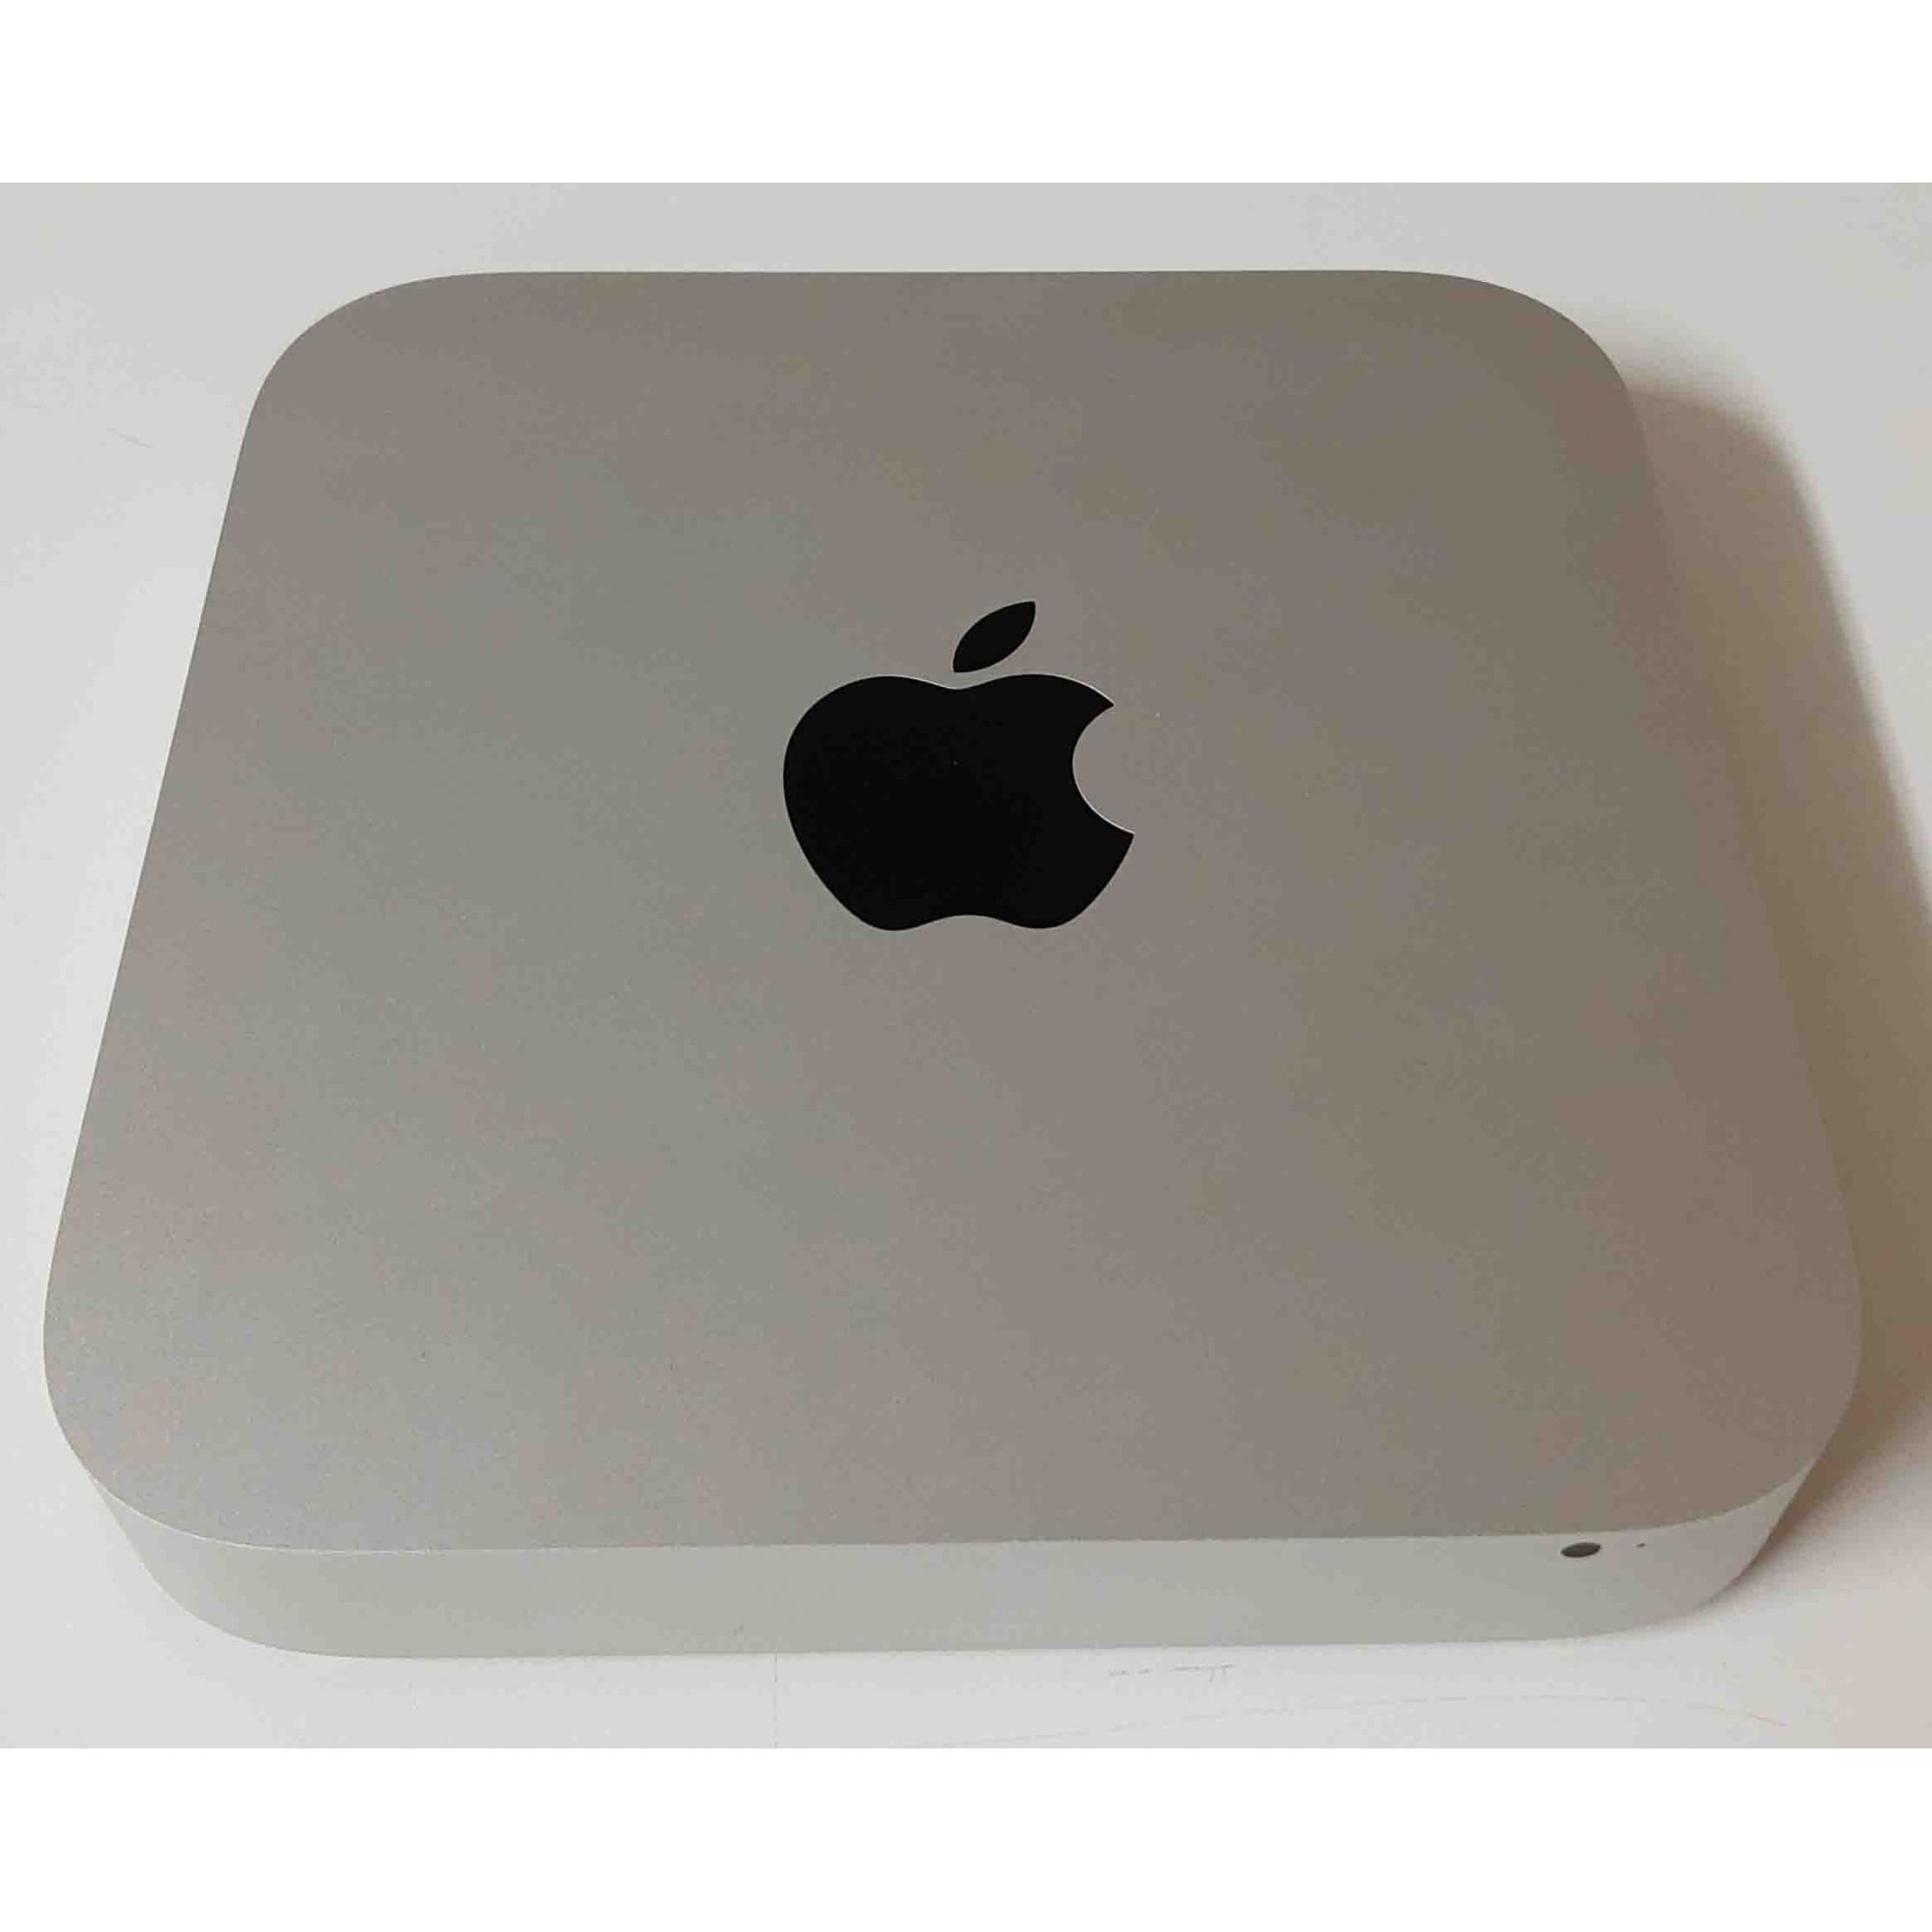 Mac Mini MGEM2LL/A Intel Core I5 1.4GHz 4GB HD-500GB